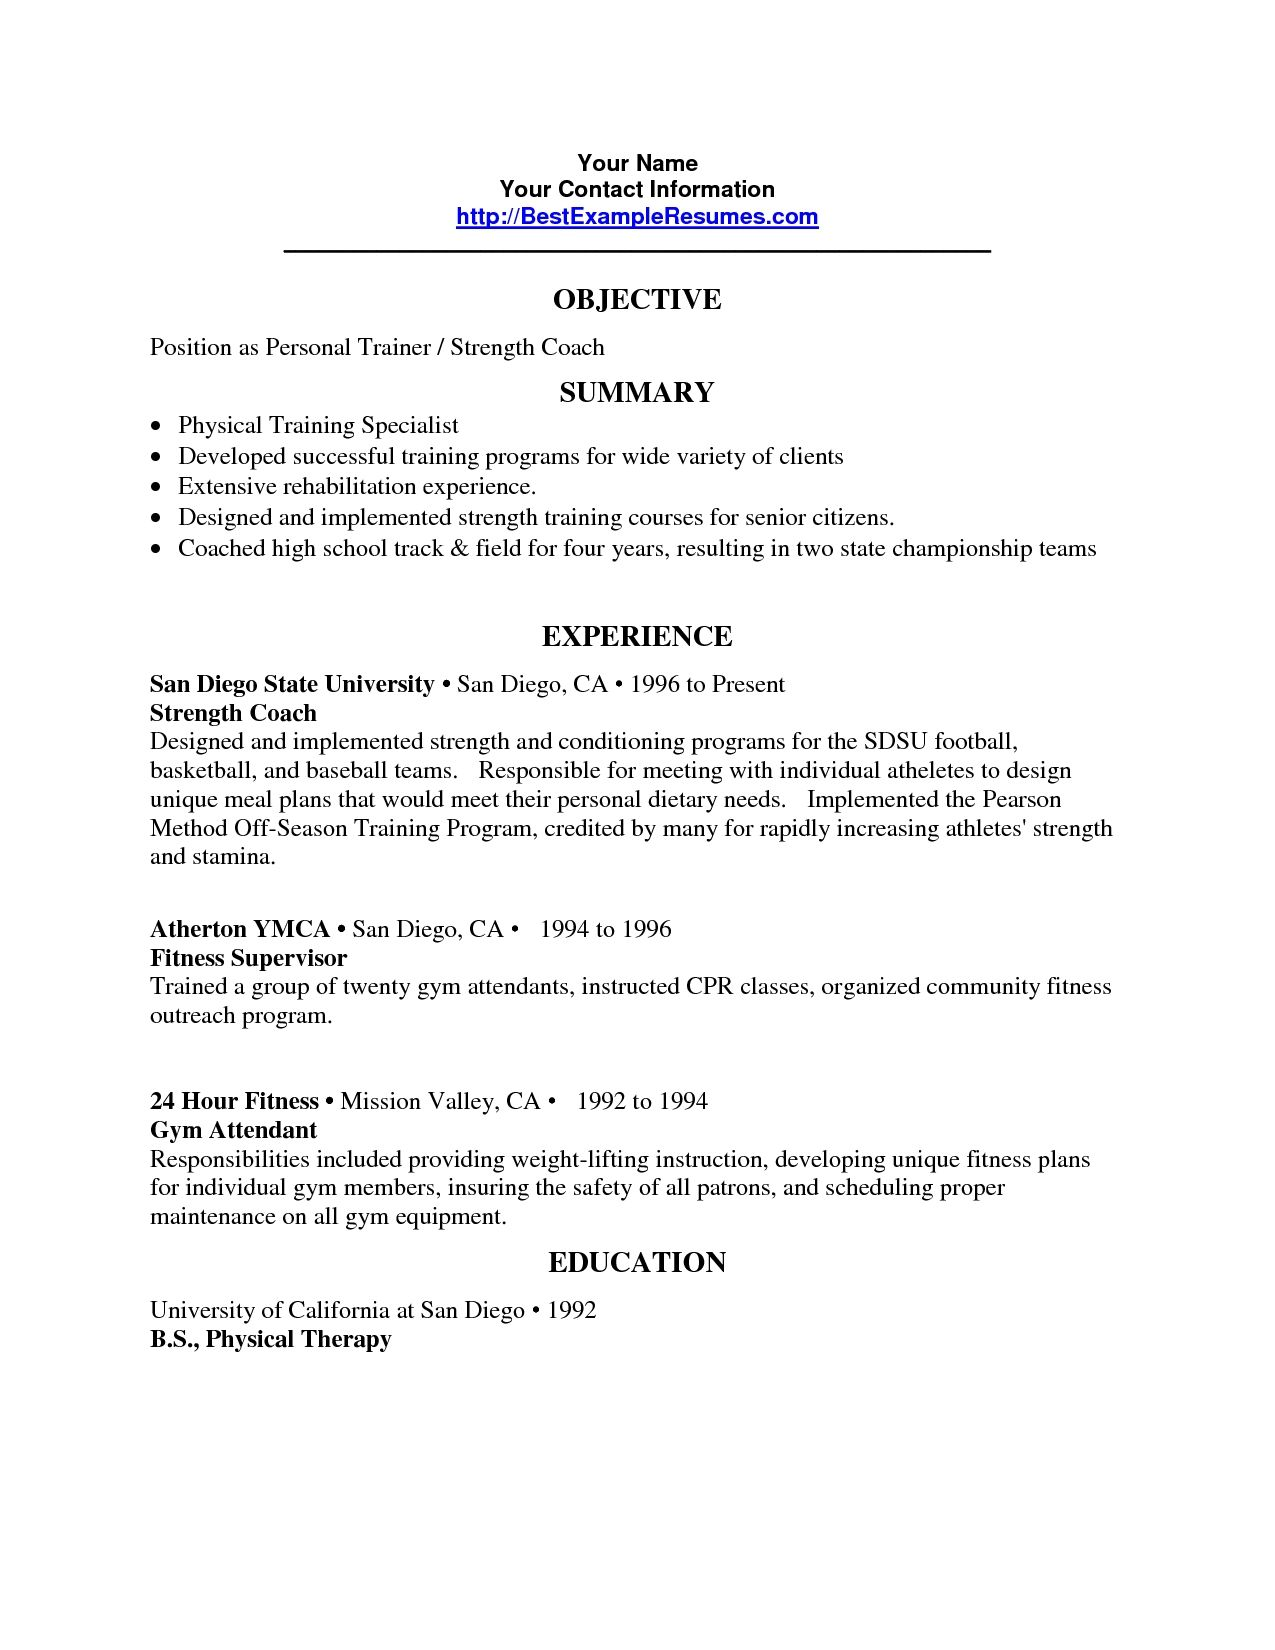 Personal Trainer Resume Objective Trainer Resume Sample